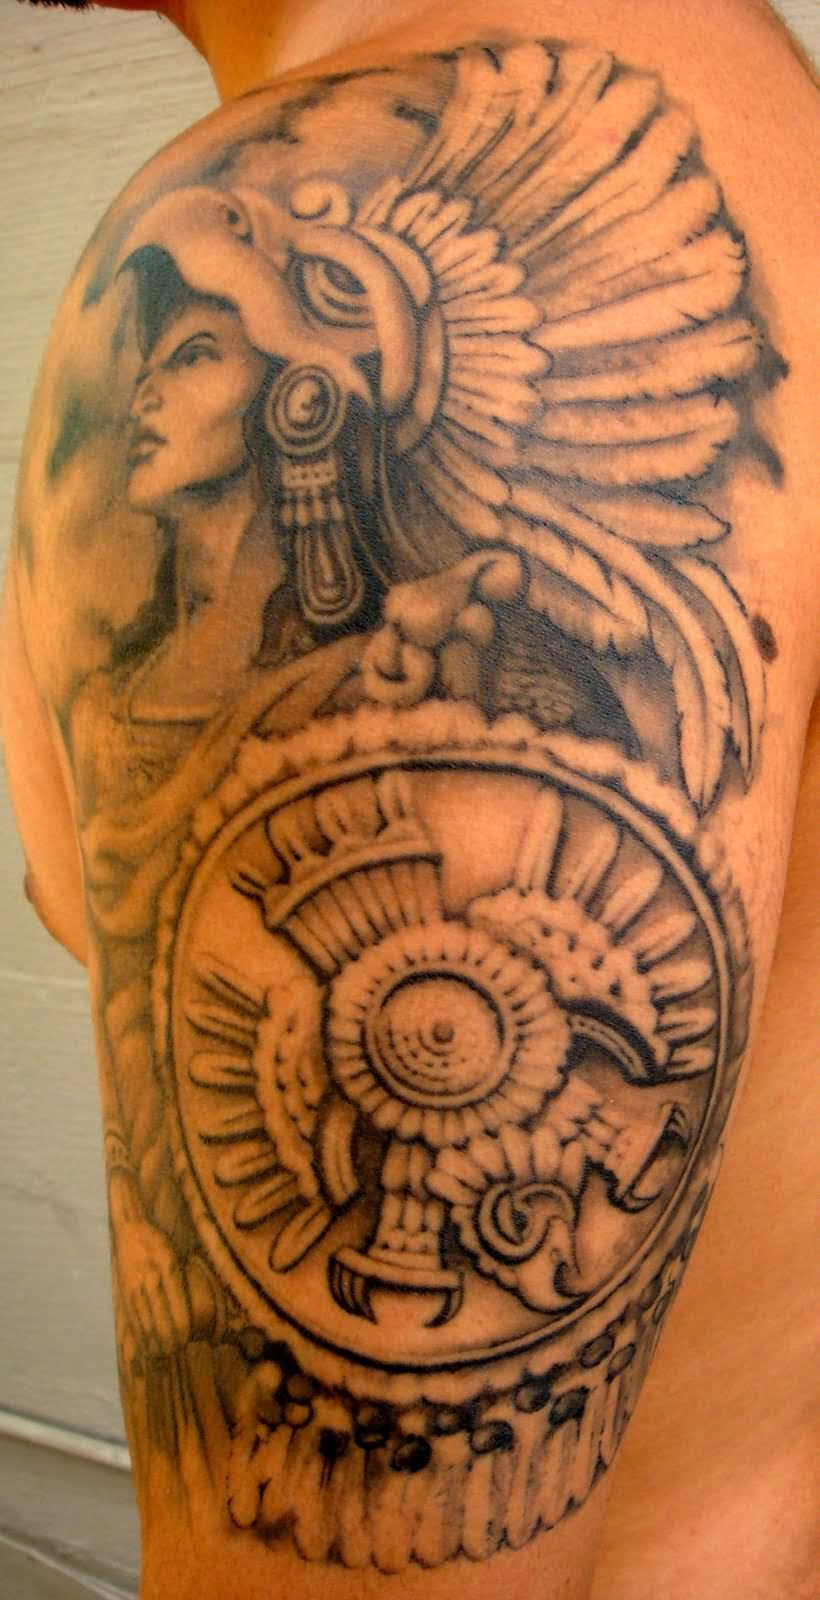 with tribal letters tattoos Meaning  Ideas Aztec You  Designs, Tattoos Tattoos and For